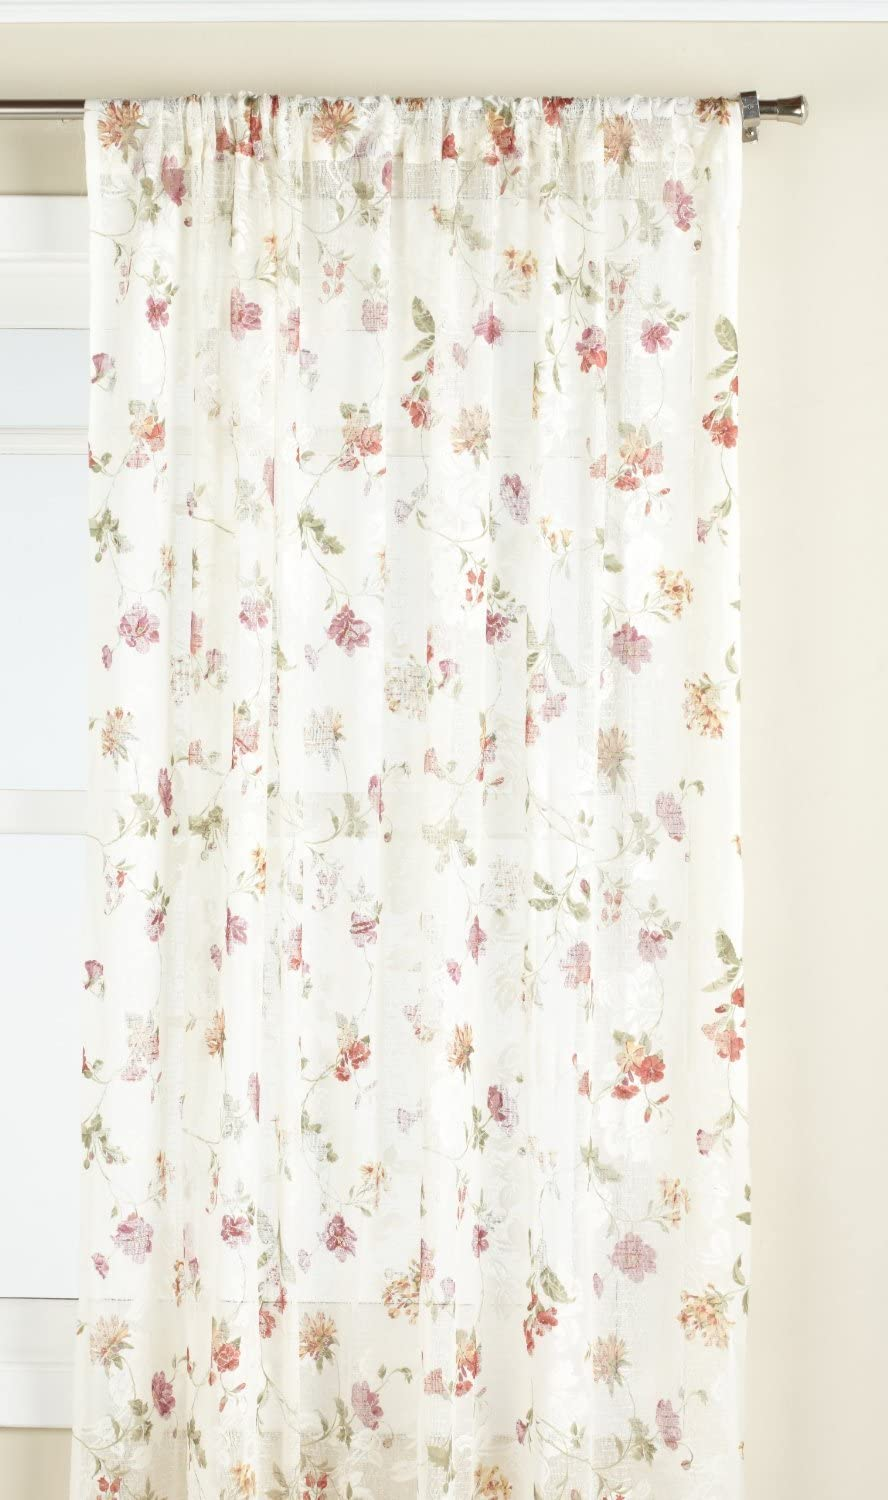 LORRAINE HOME FASHIONS Brewster Lace Tailored Window Treatment Panel, 50 by 84-Inch, Ivory